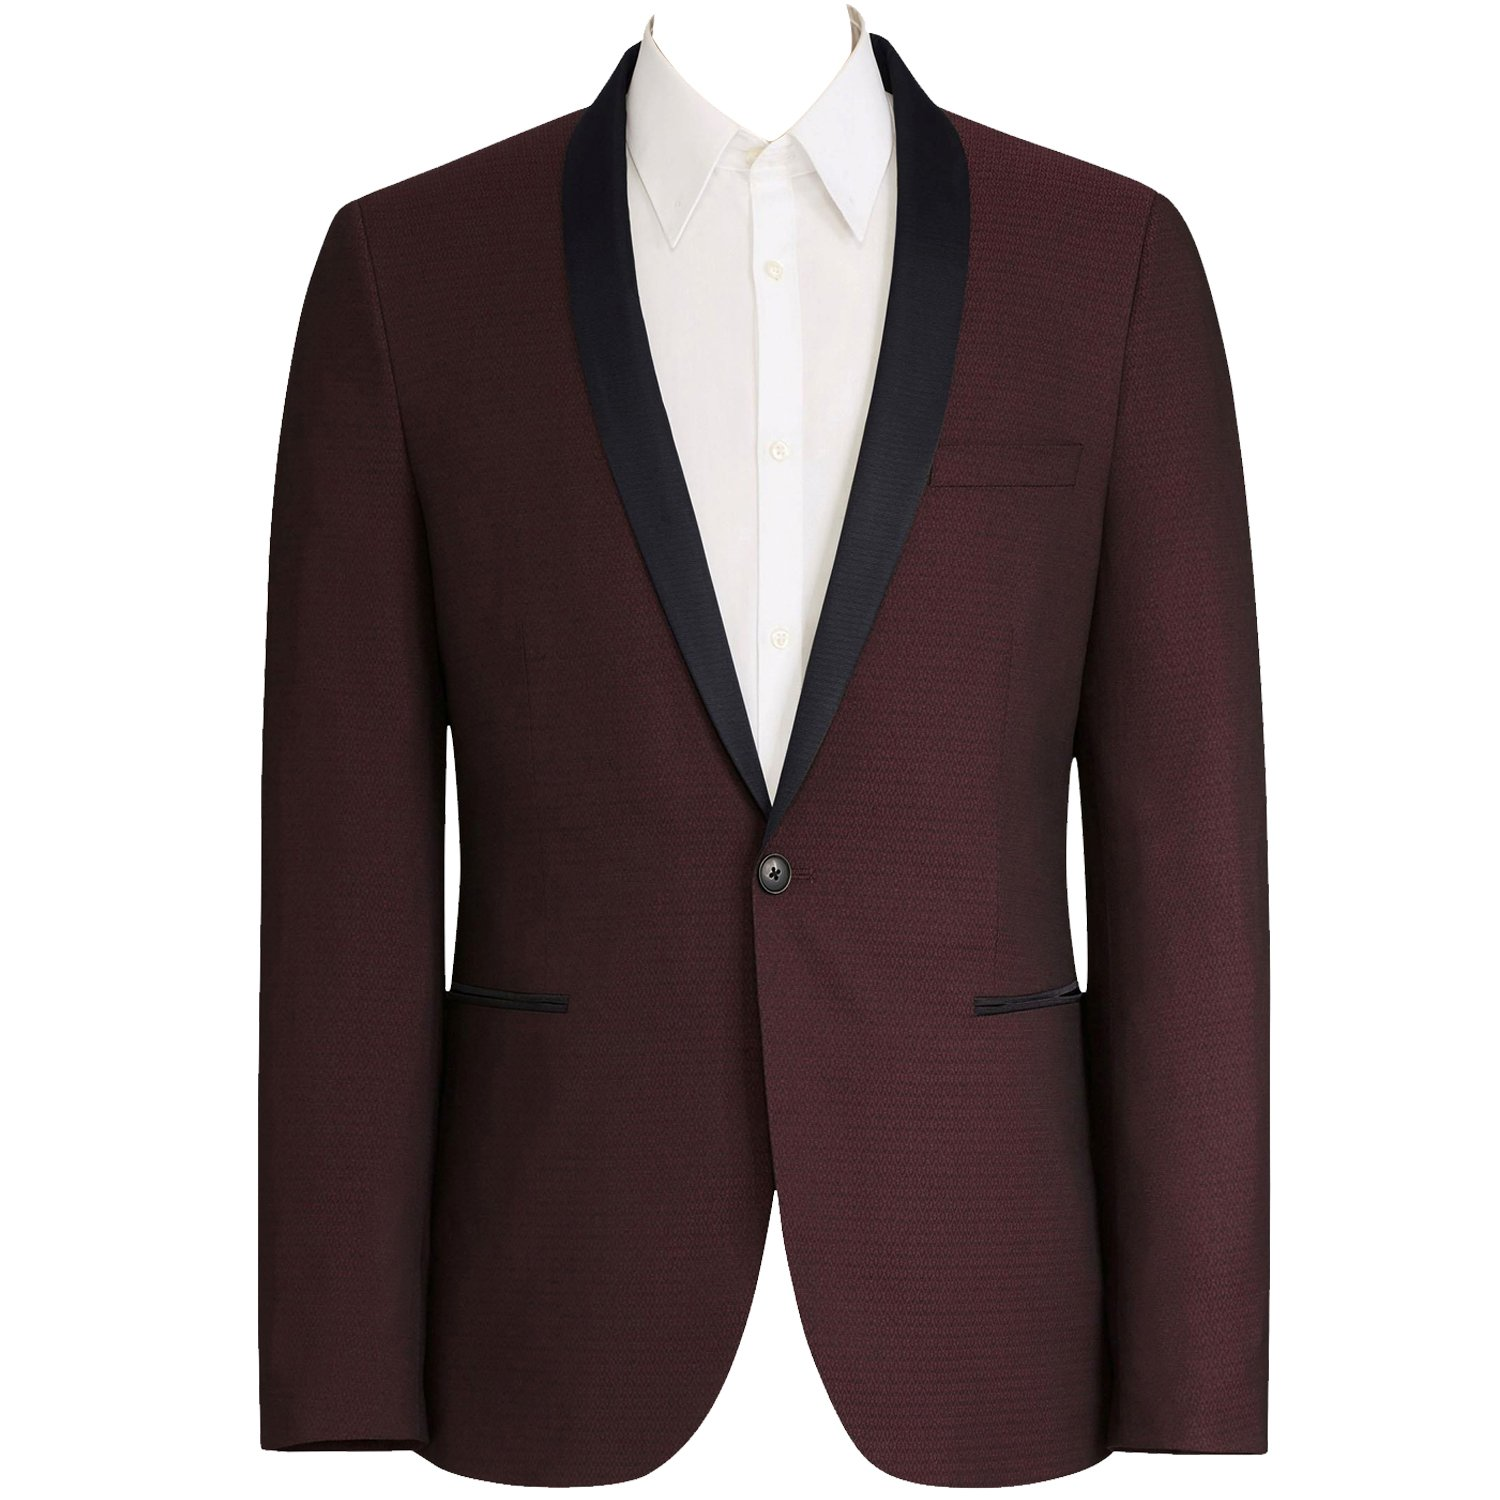 HBDesign Mens 1 Piece 1 Button Shawl Lapel Slim Fit Fashion Modern Tuxedo Wine Red HM546WineredJ